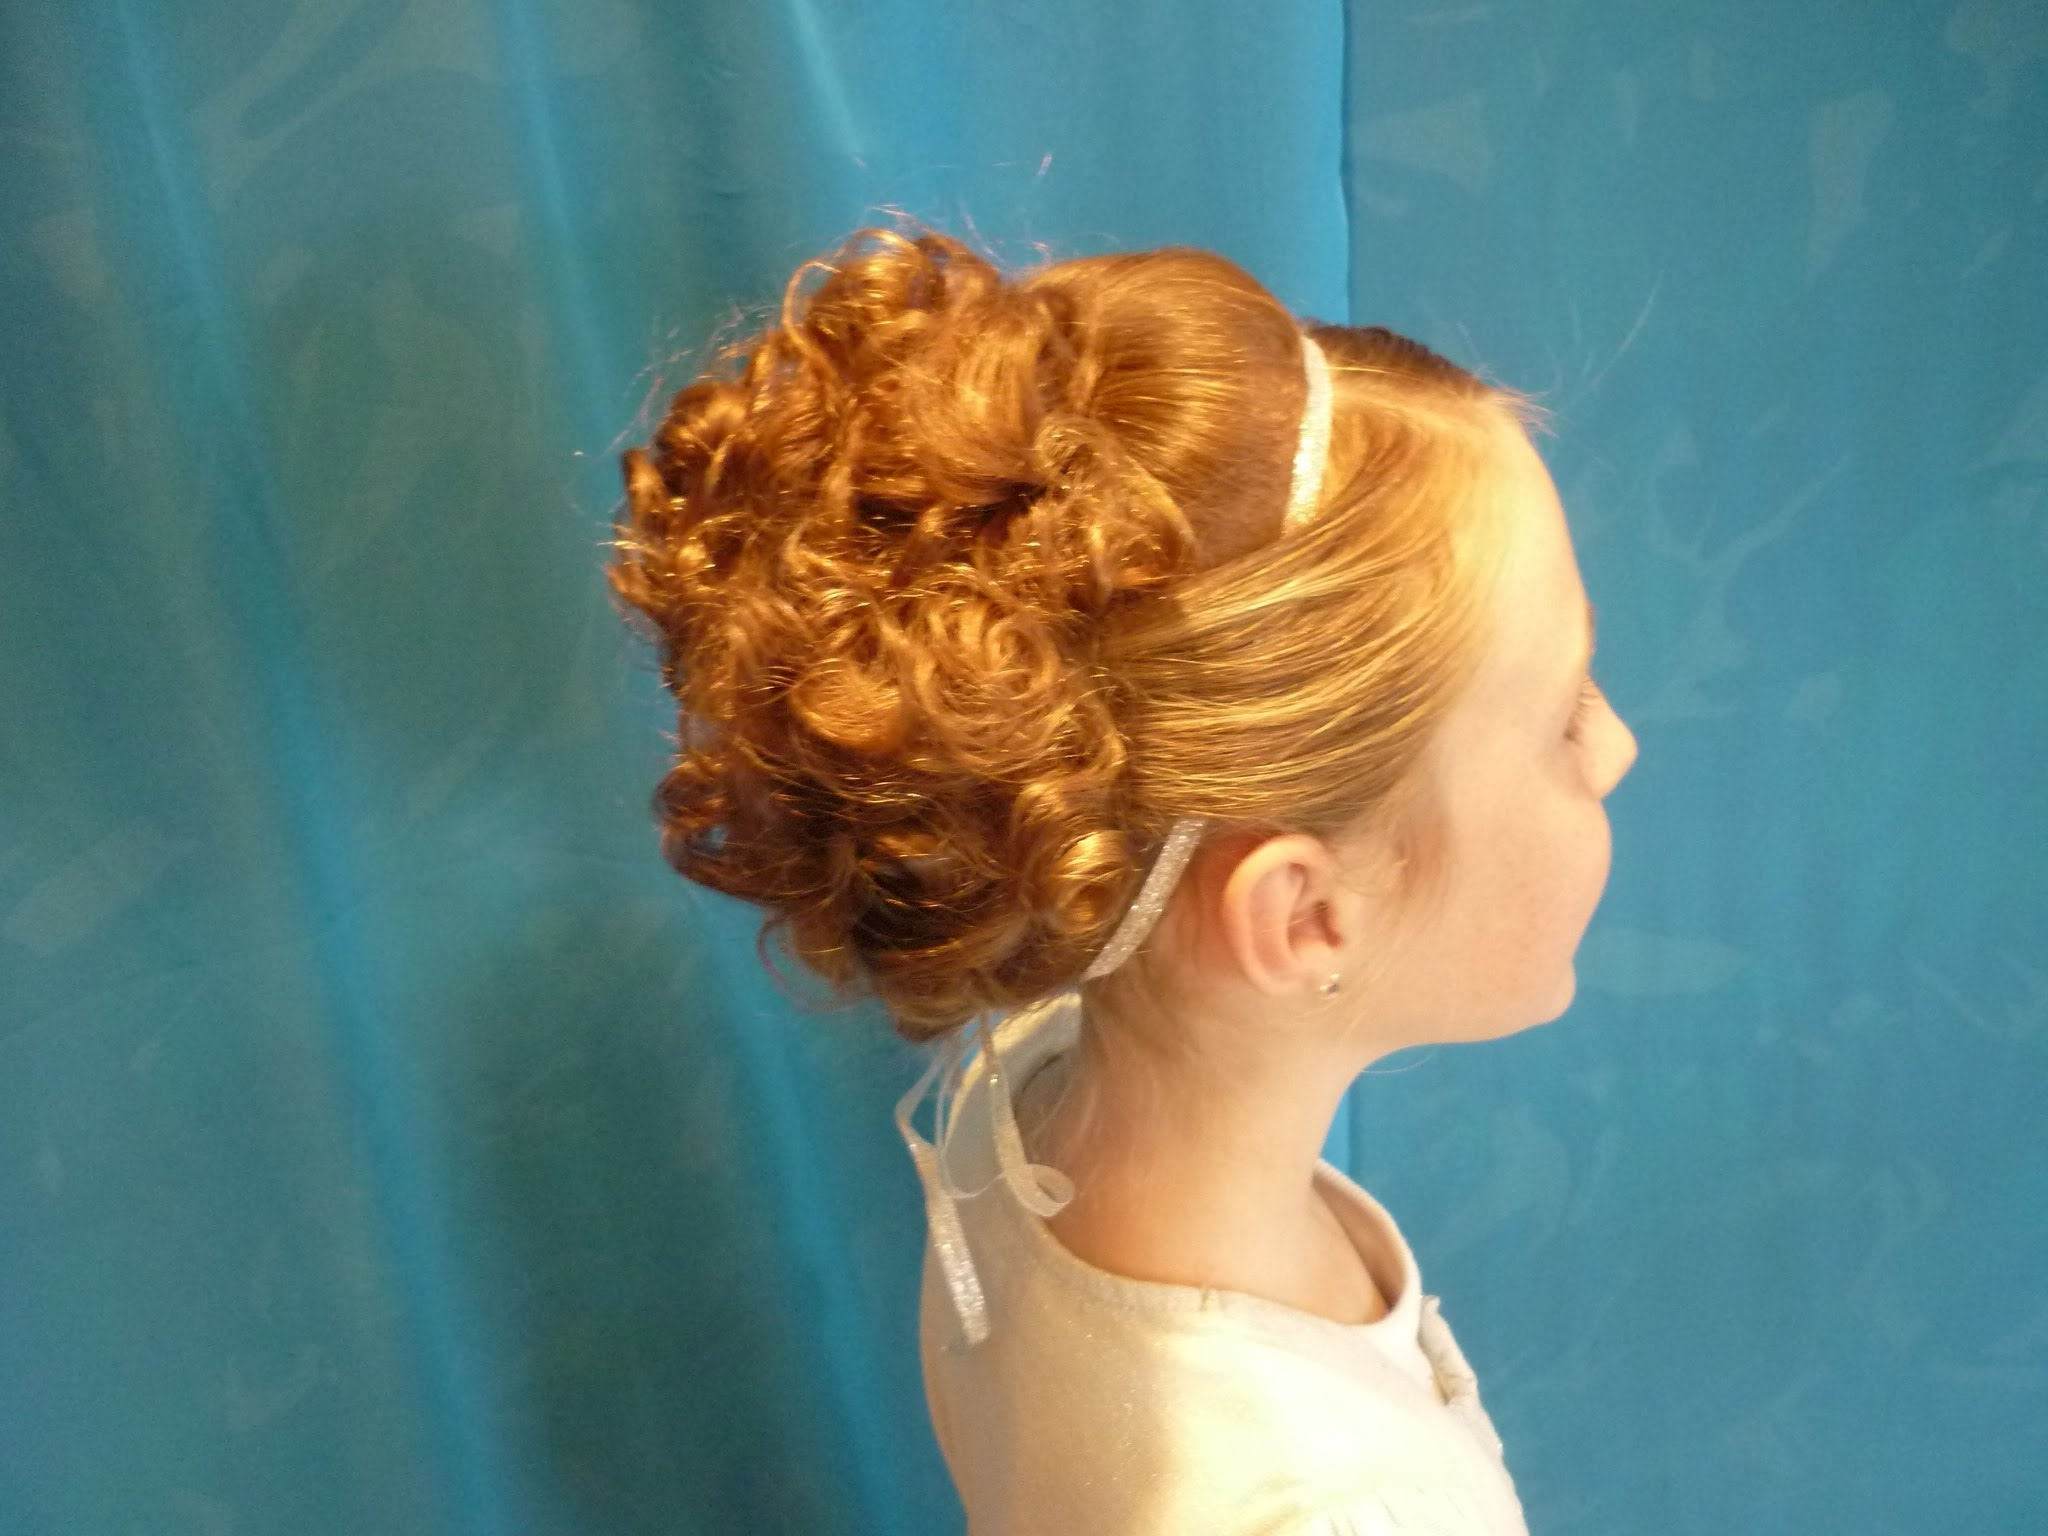 Elegant Updo With Curls For Medium Length Hair – Youtube With Regard To Children's Updo Hairstyles (Gallery 13 of 15)